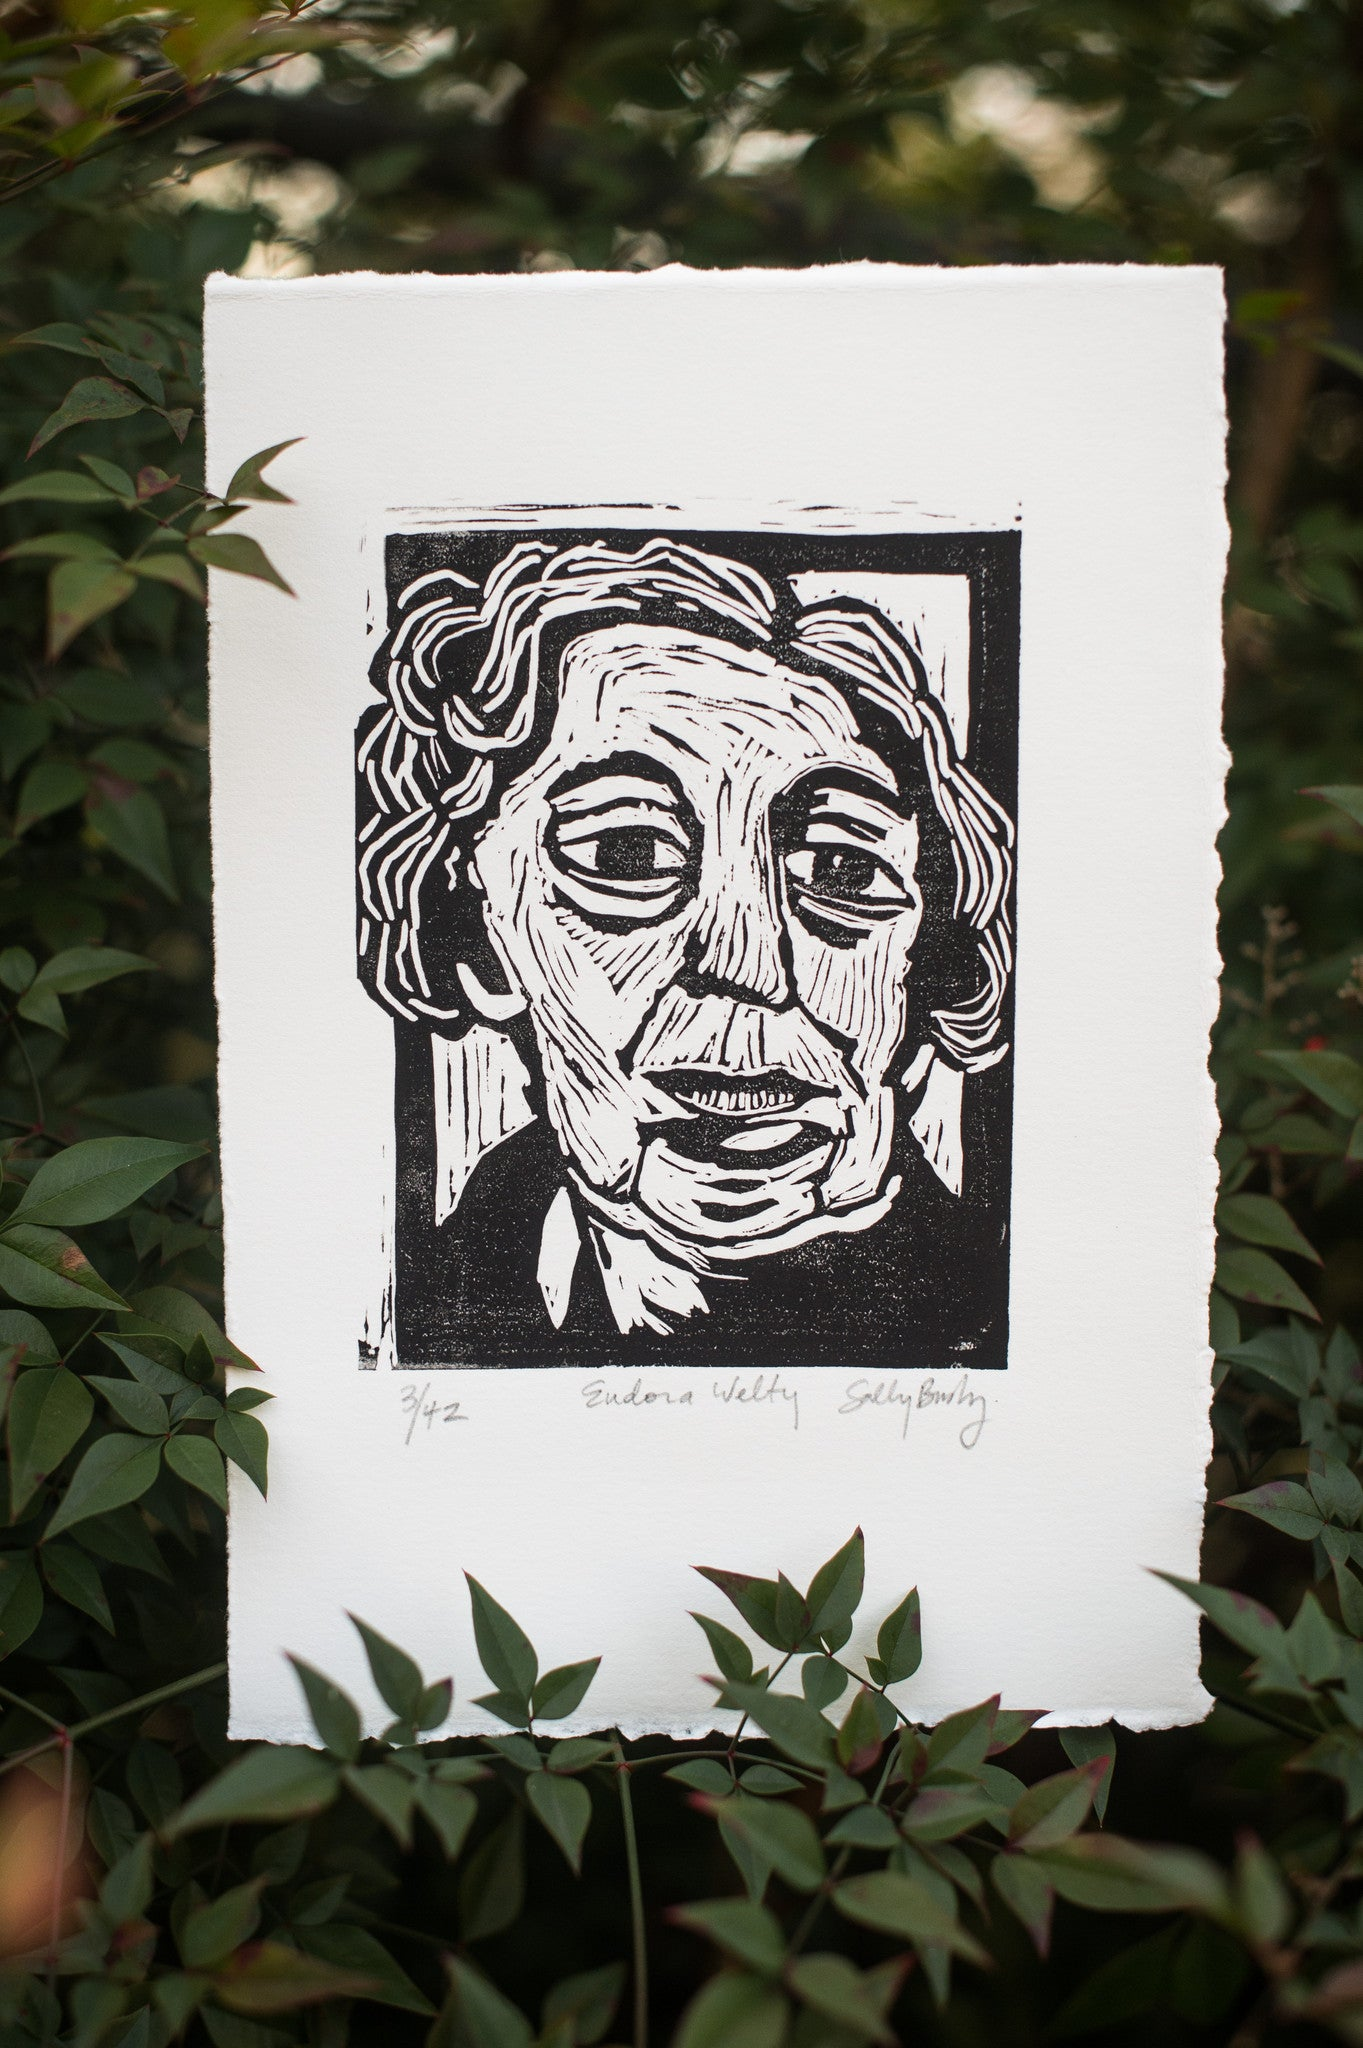 Hand Pulled Eudora Welty Linocut Art Print with leaves Literary Gift by Eastgrove Studio